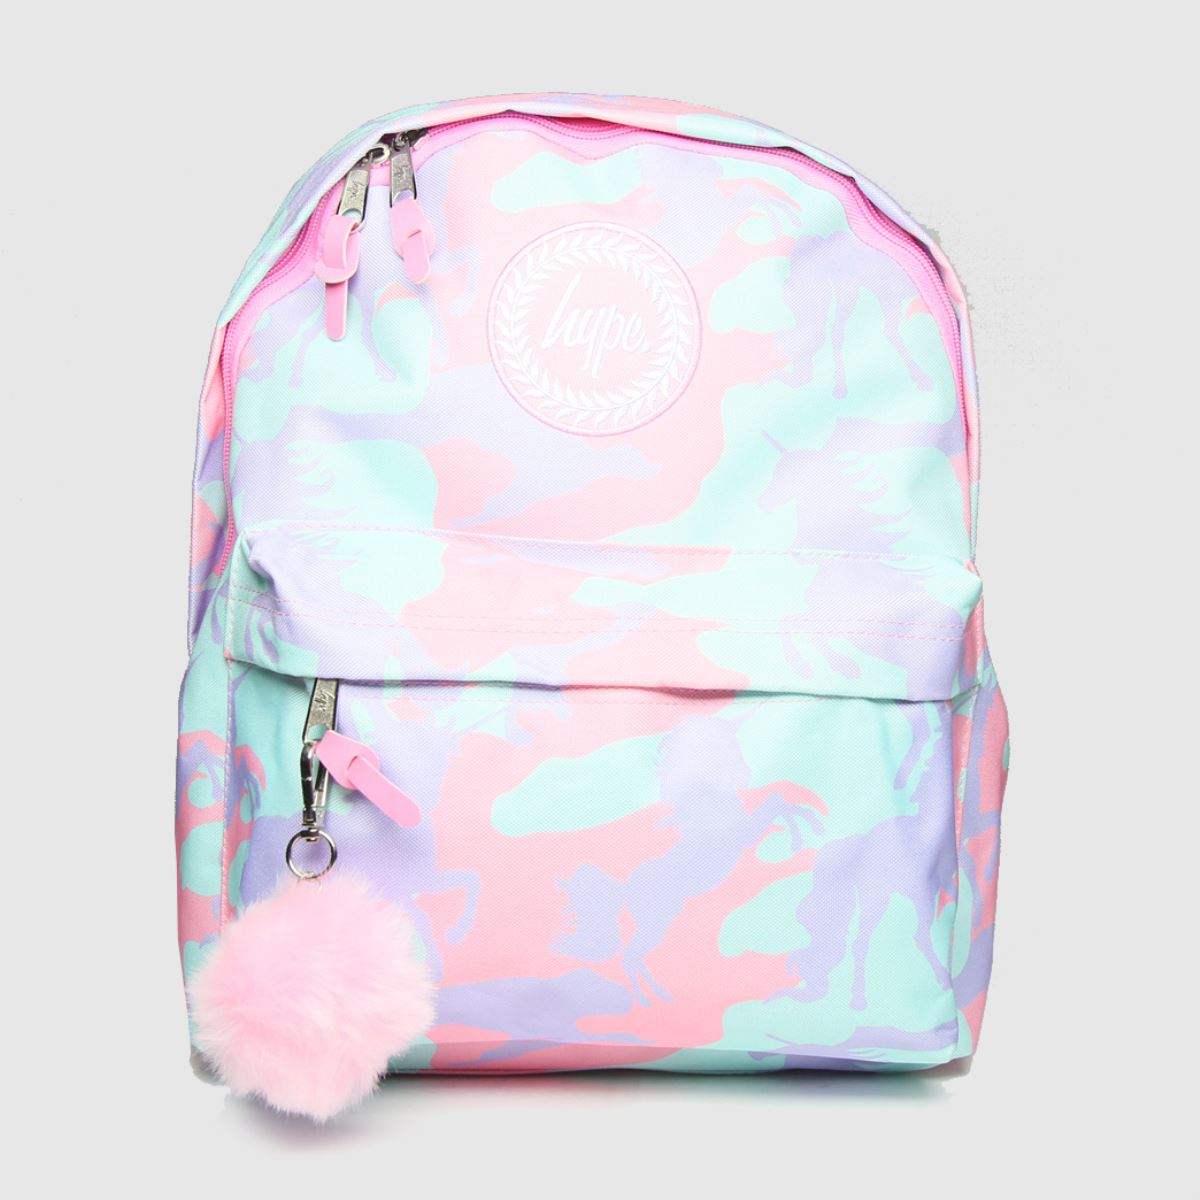 Accessories Hype Pale Pink Backpack